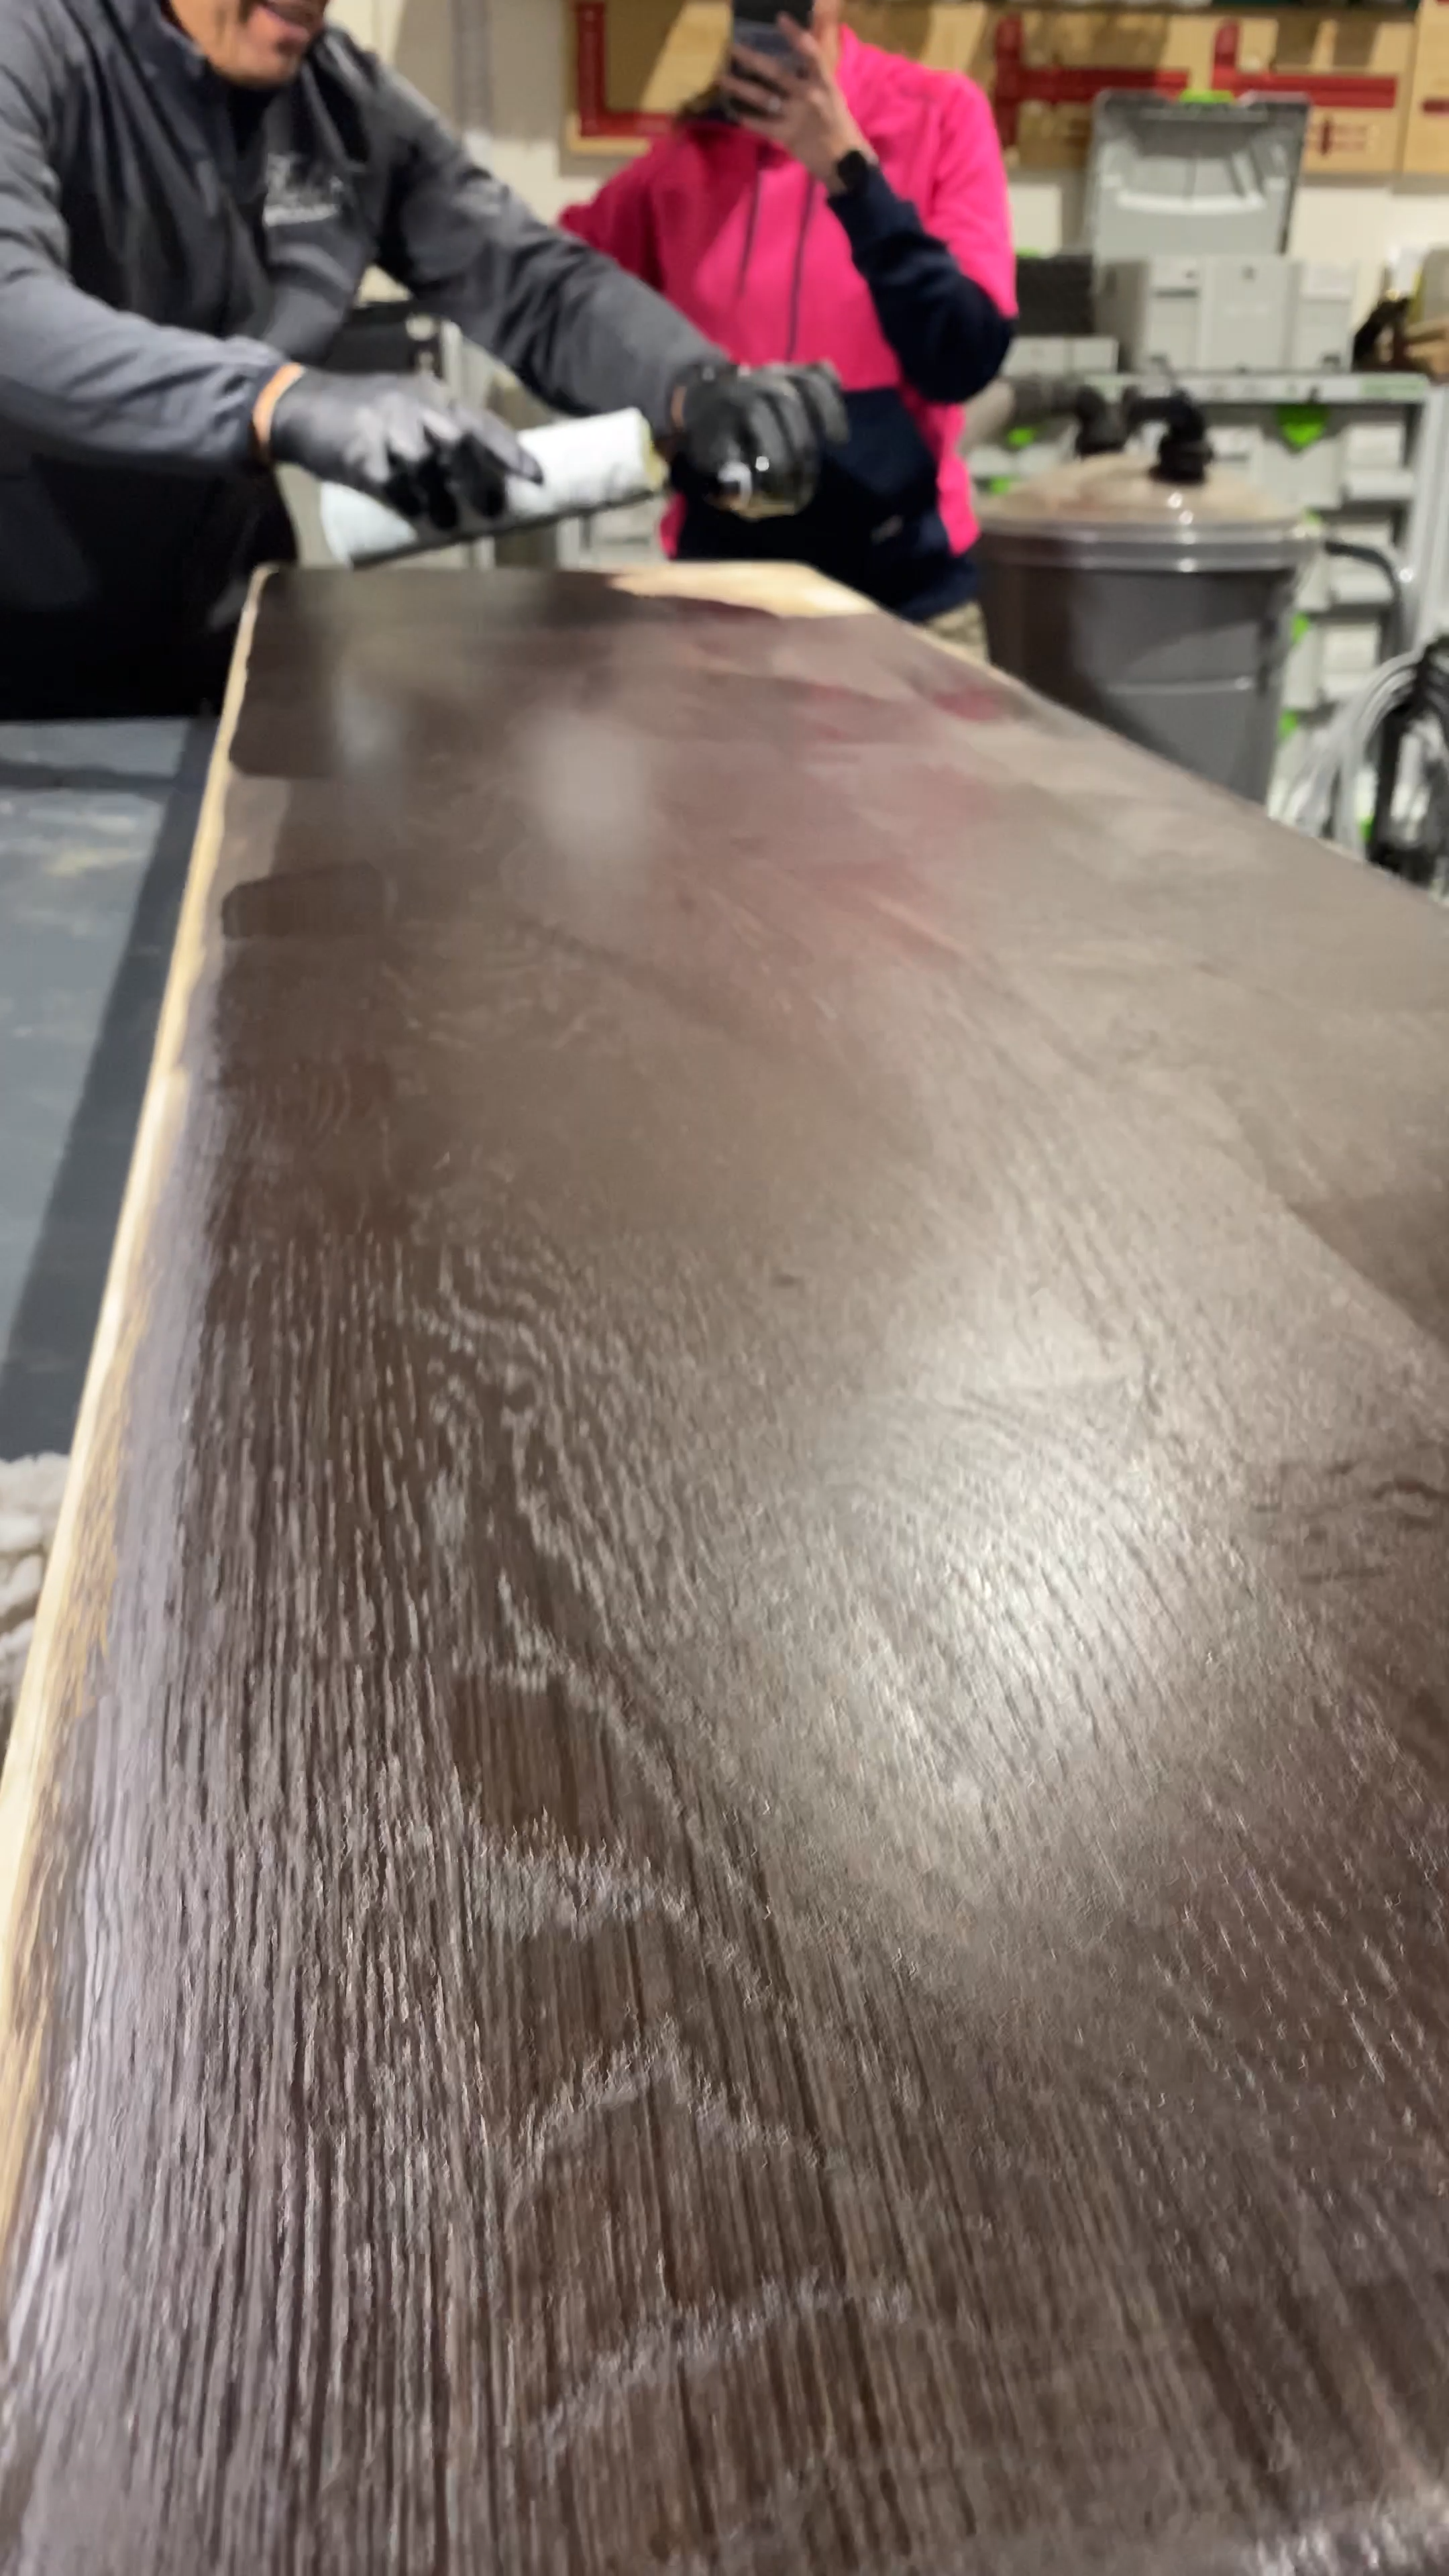 Finishing White Oak Cushion For Liveedge Beech Couch With Natural Wood Finish During Our R In 2020 Wood Floor Stain Colors Staining Wood Natural Wood Finish